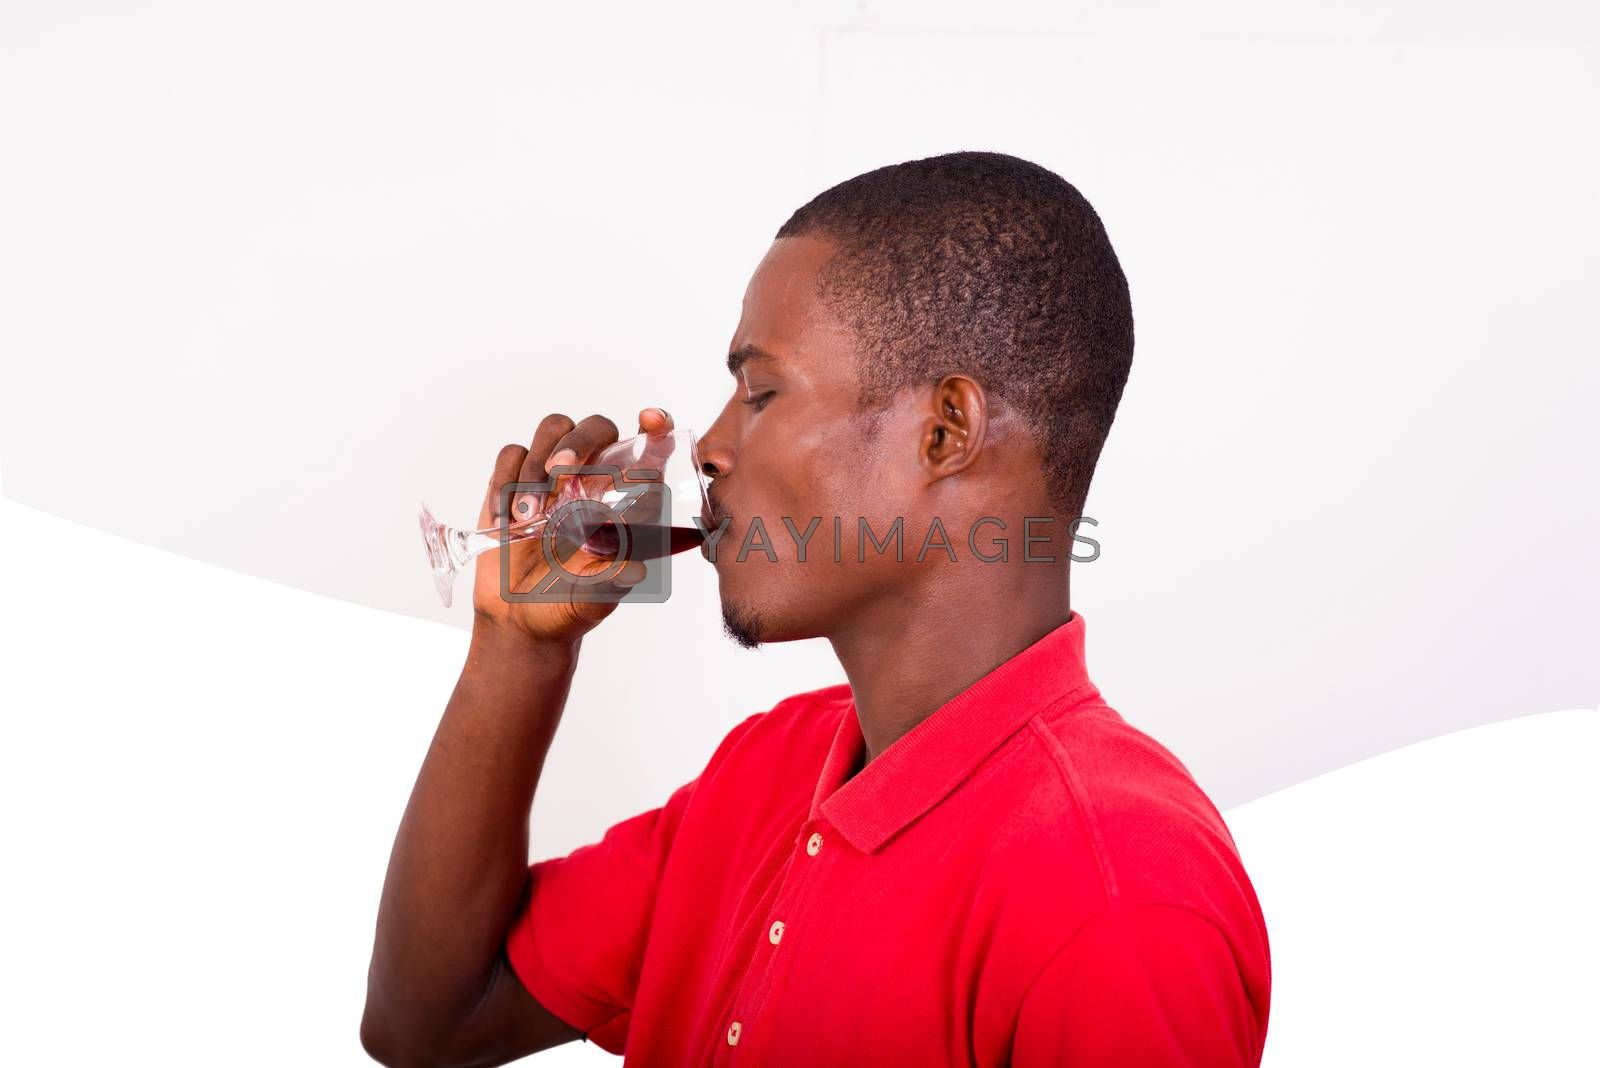 portrait of young man in red profile tee-shirt drinking red wine isolated on white background.